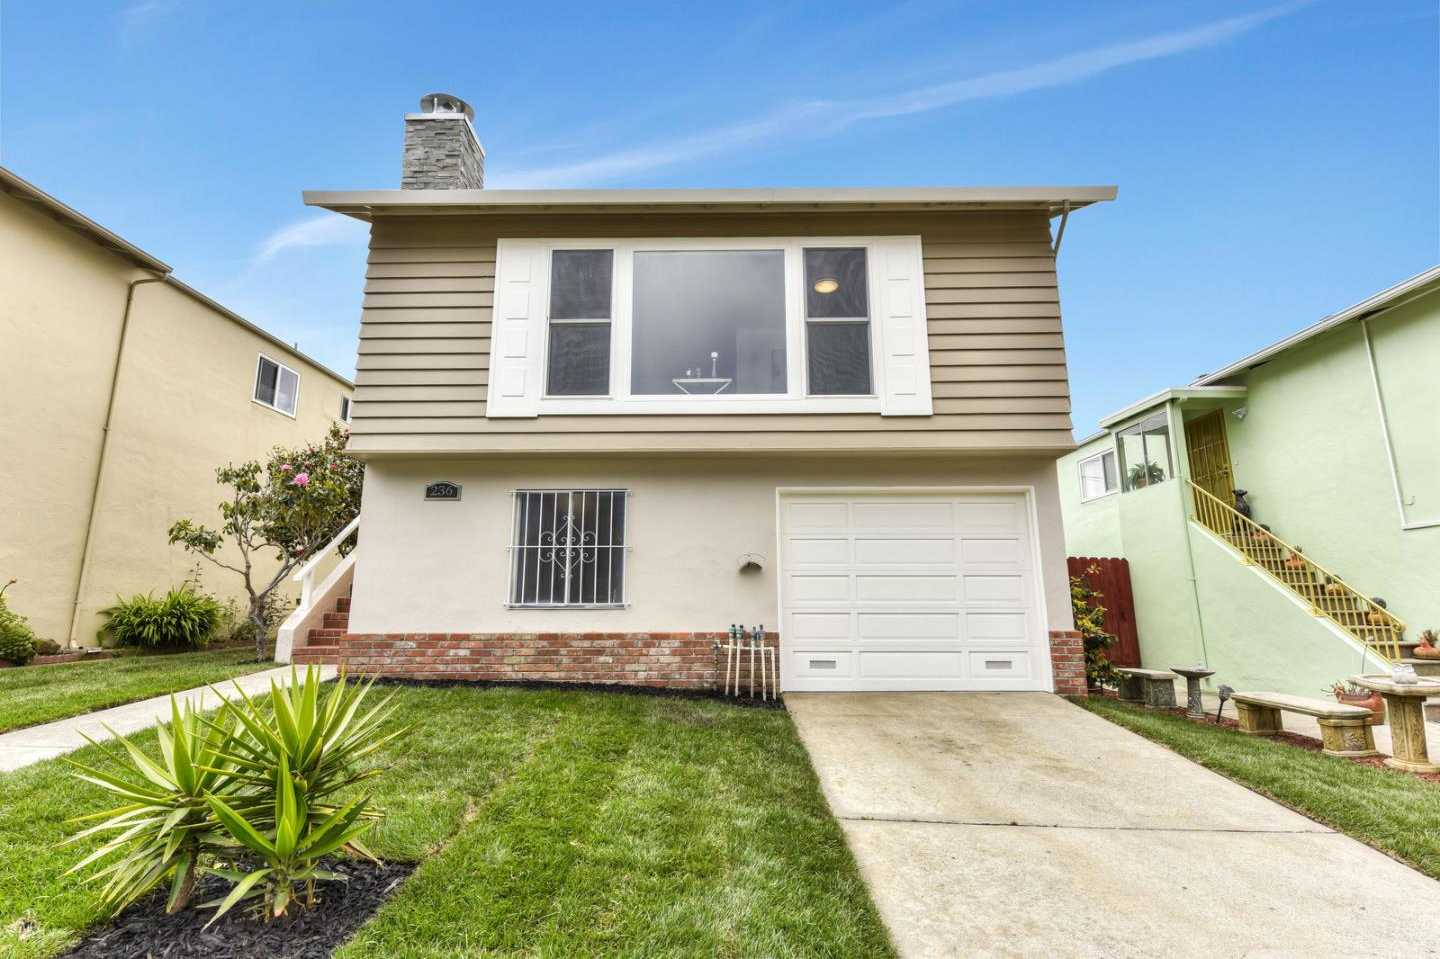 236 Catalina Ave Pacifica, CA 94044